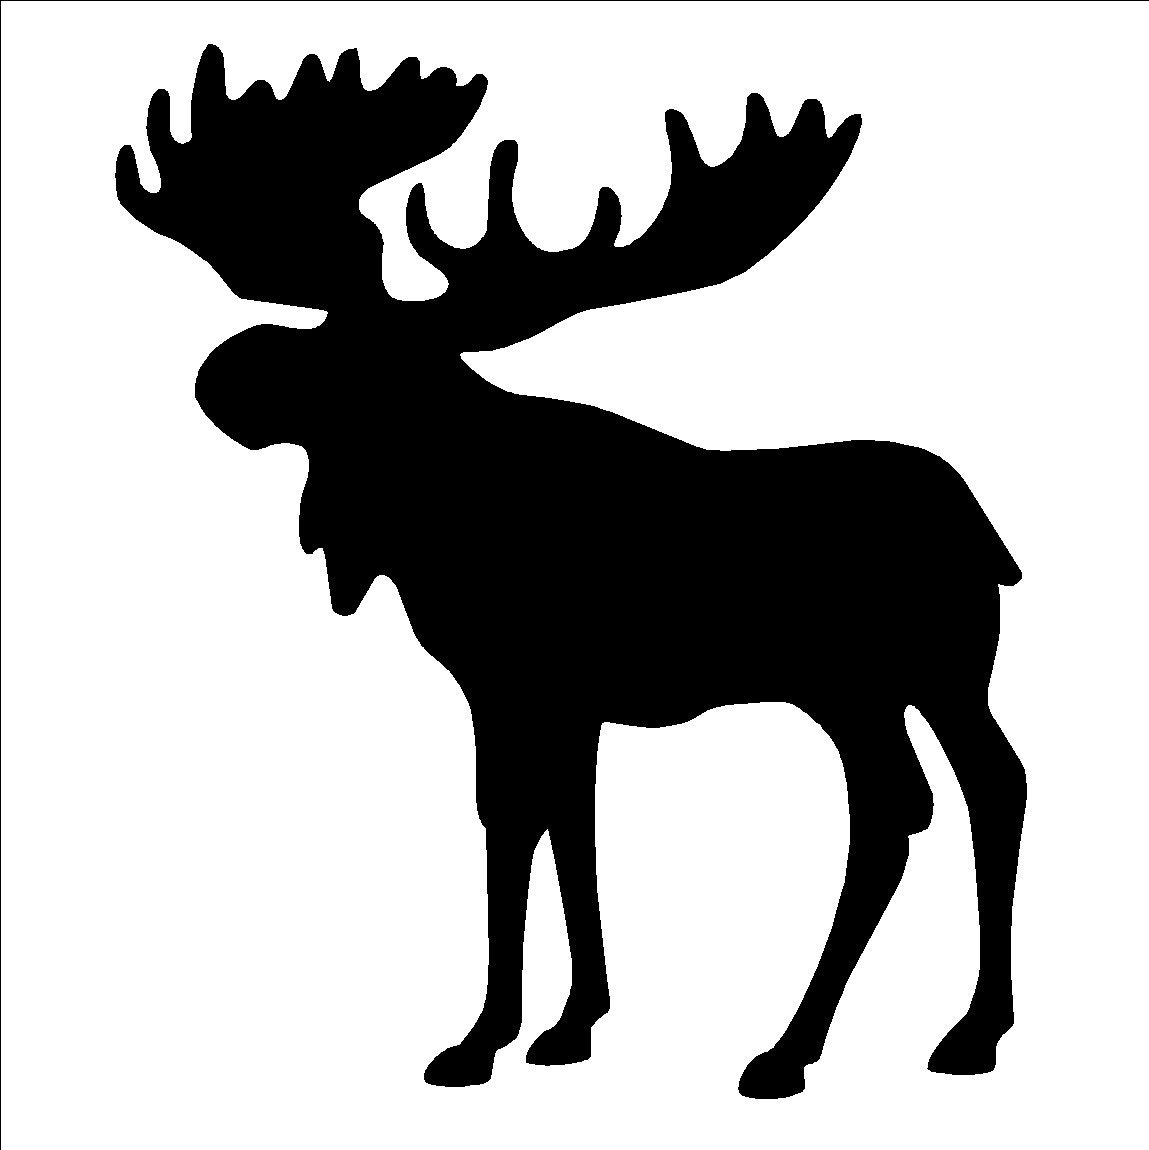 moose silhouettes moose silhouette stencil or self adhesive decal 9 5 x 11 1249